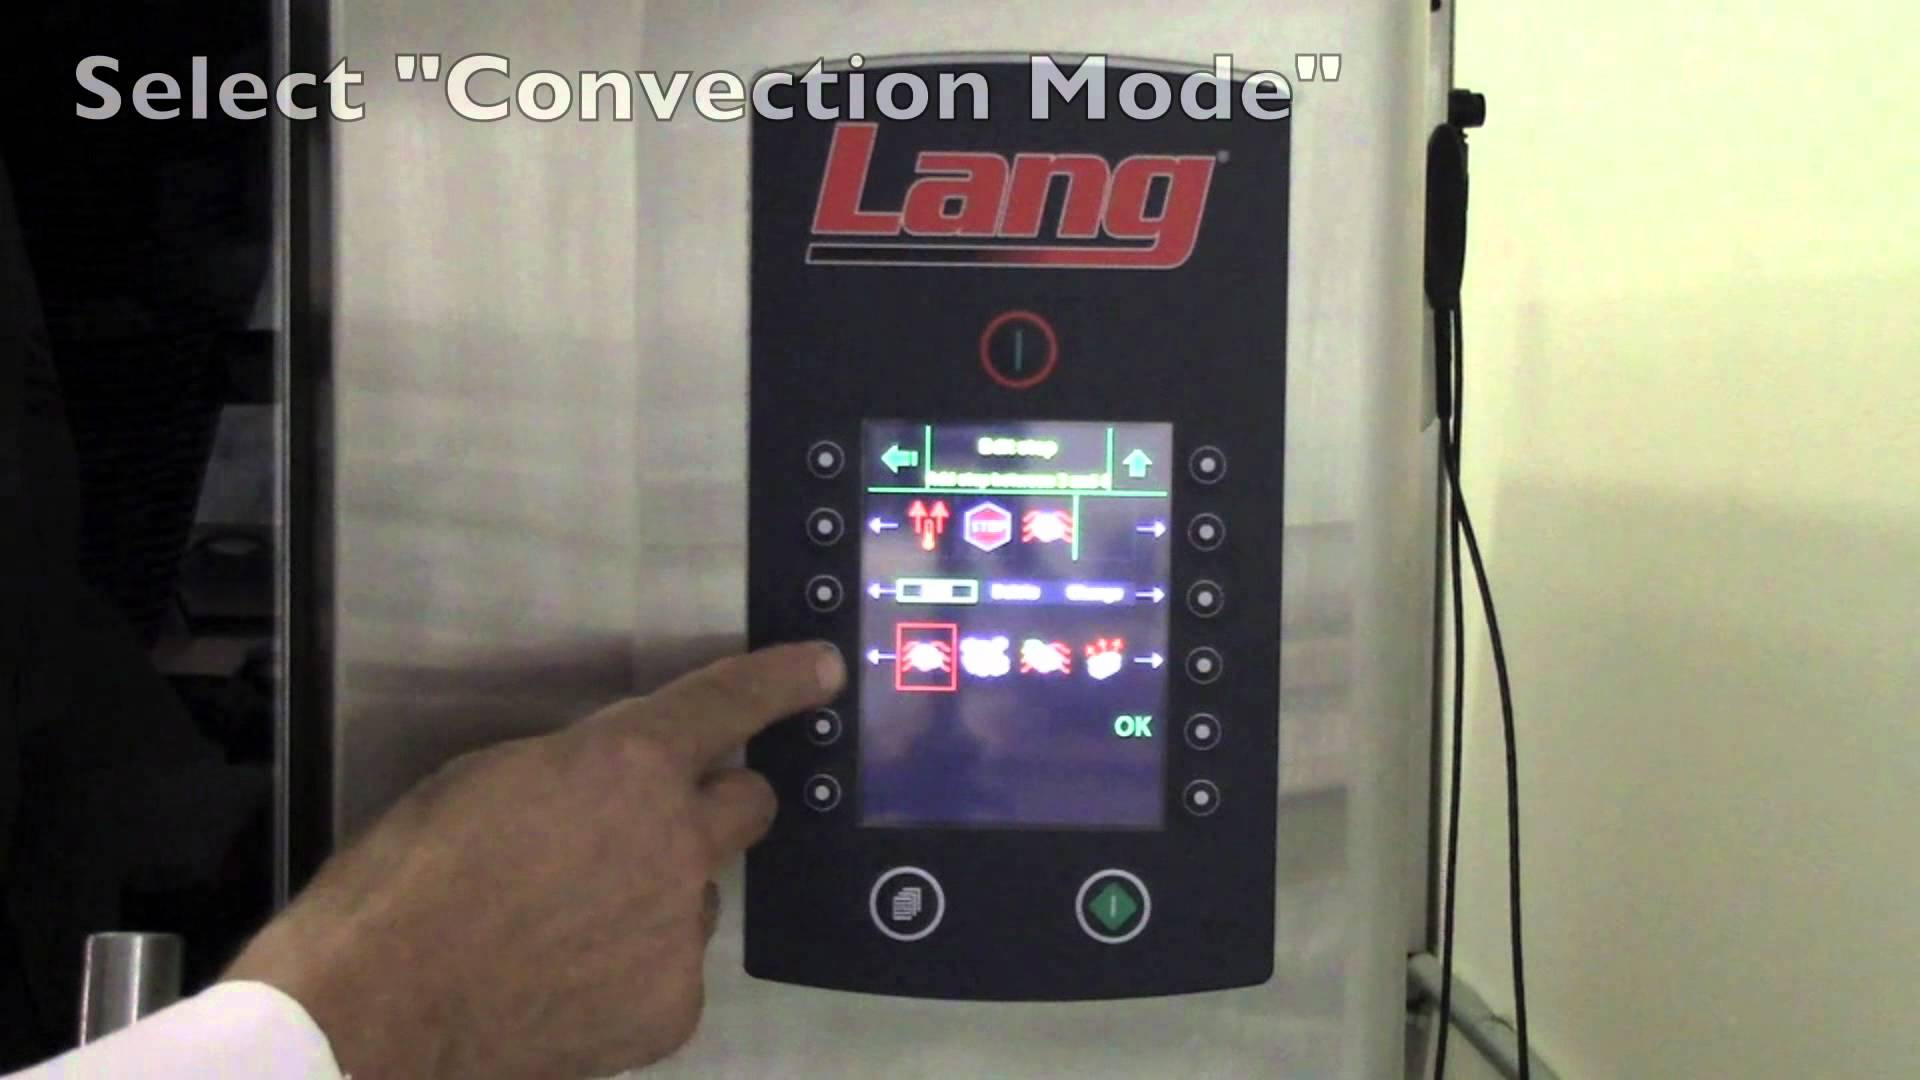 Lang – Combi Cooking Controls Overview